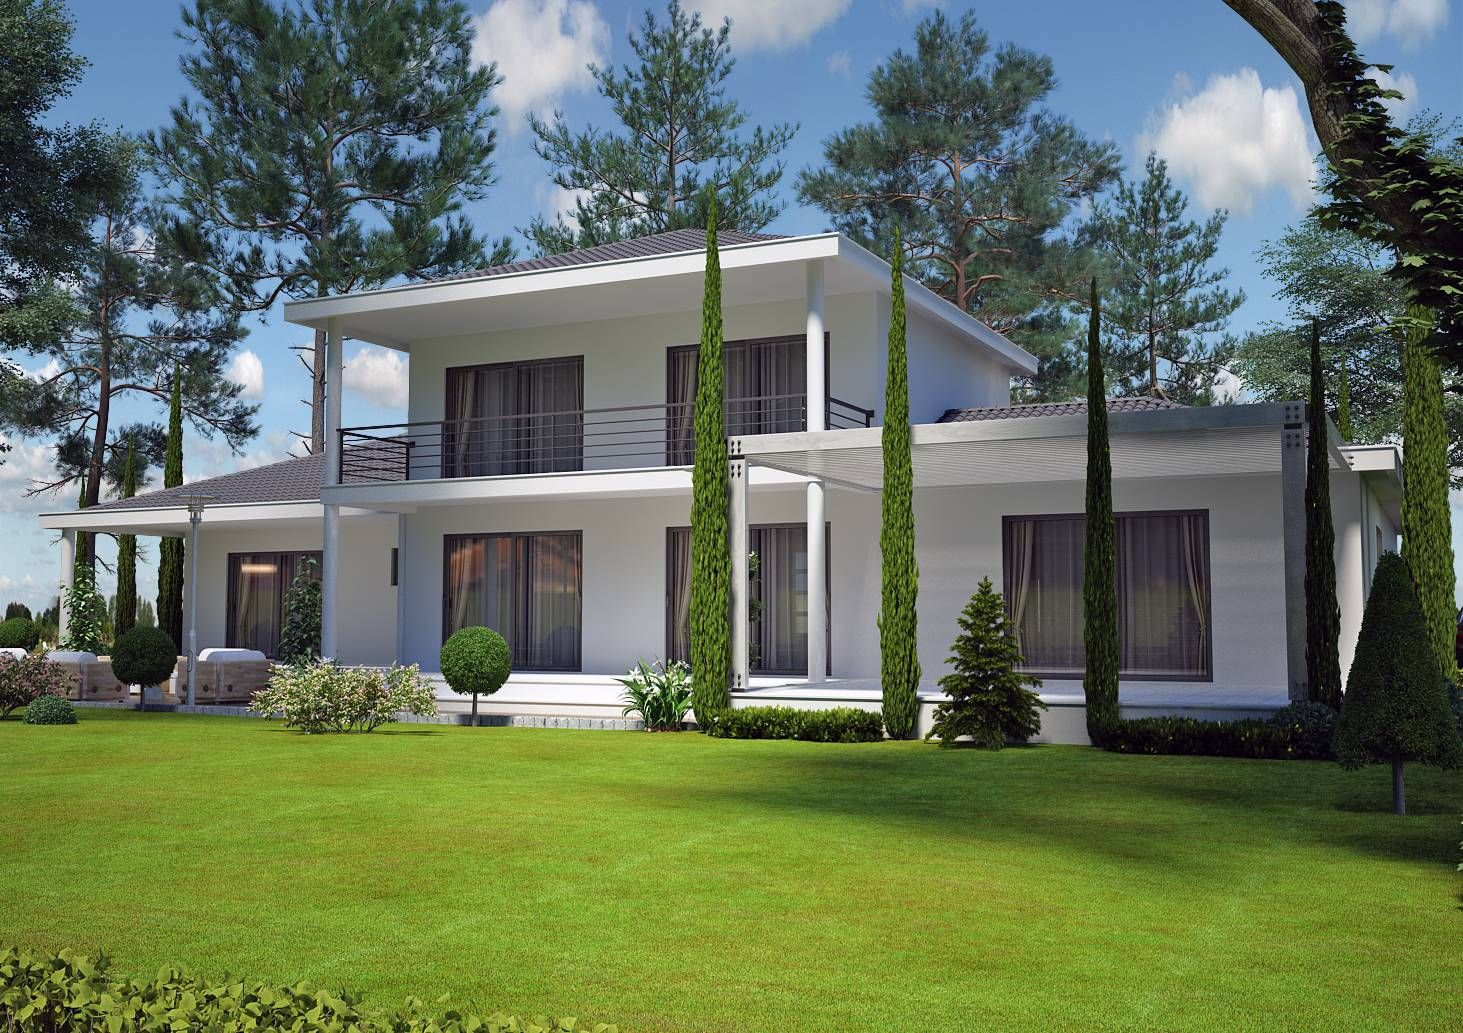 Villa contemporaine 150 m2 etage mod le pinede salon for Modele maison 6 chambres